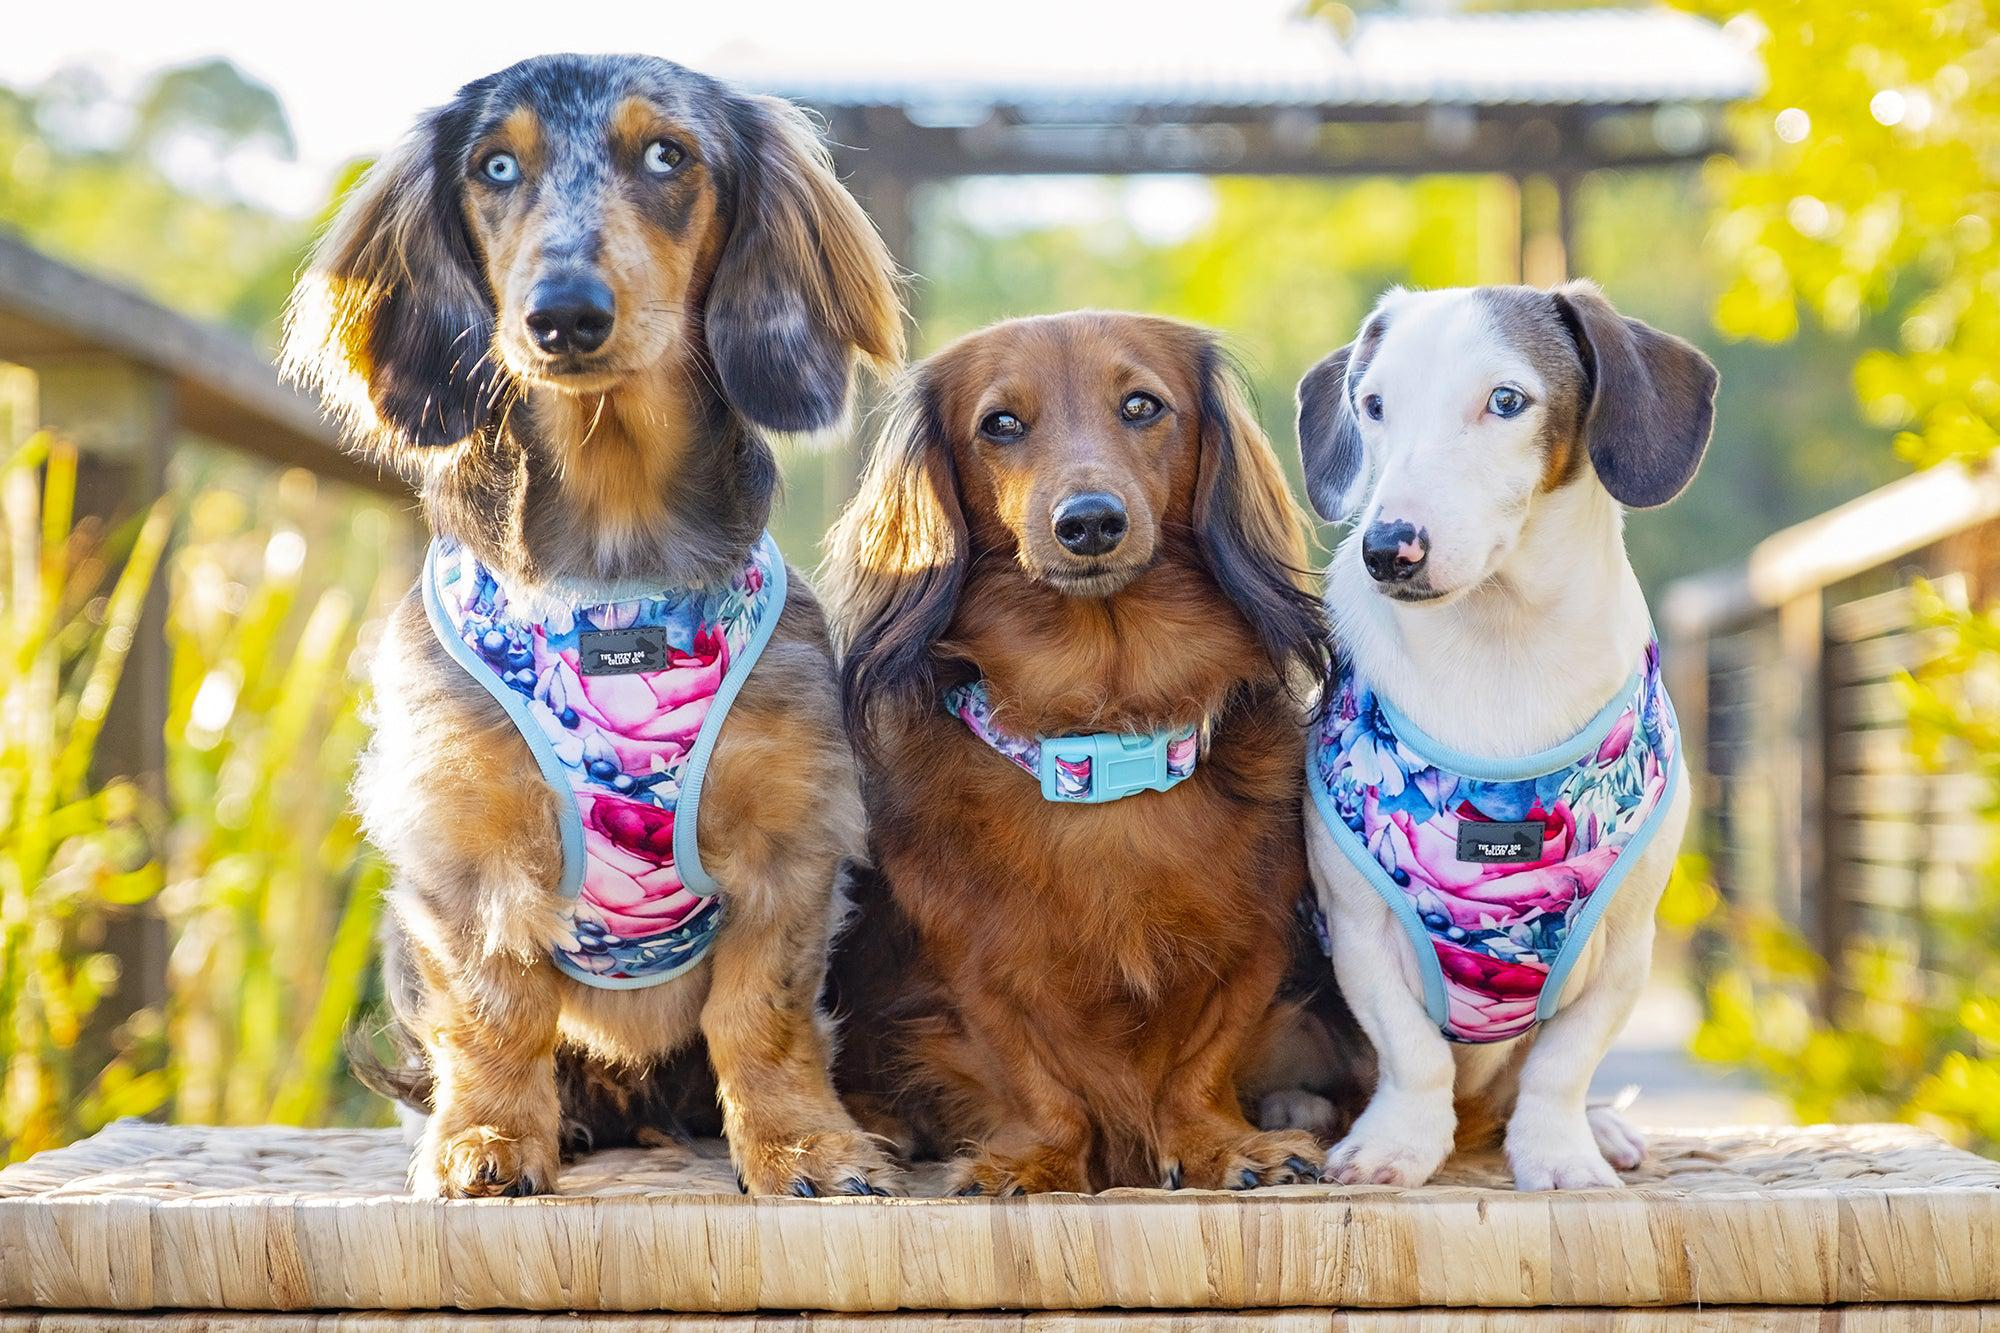 dachshund wearing collar and harness, three sausage dogs in harnesses